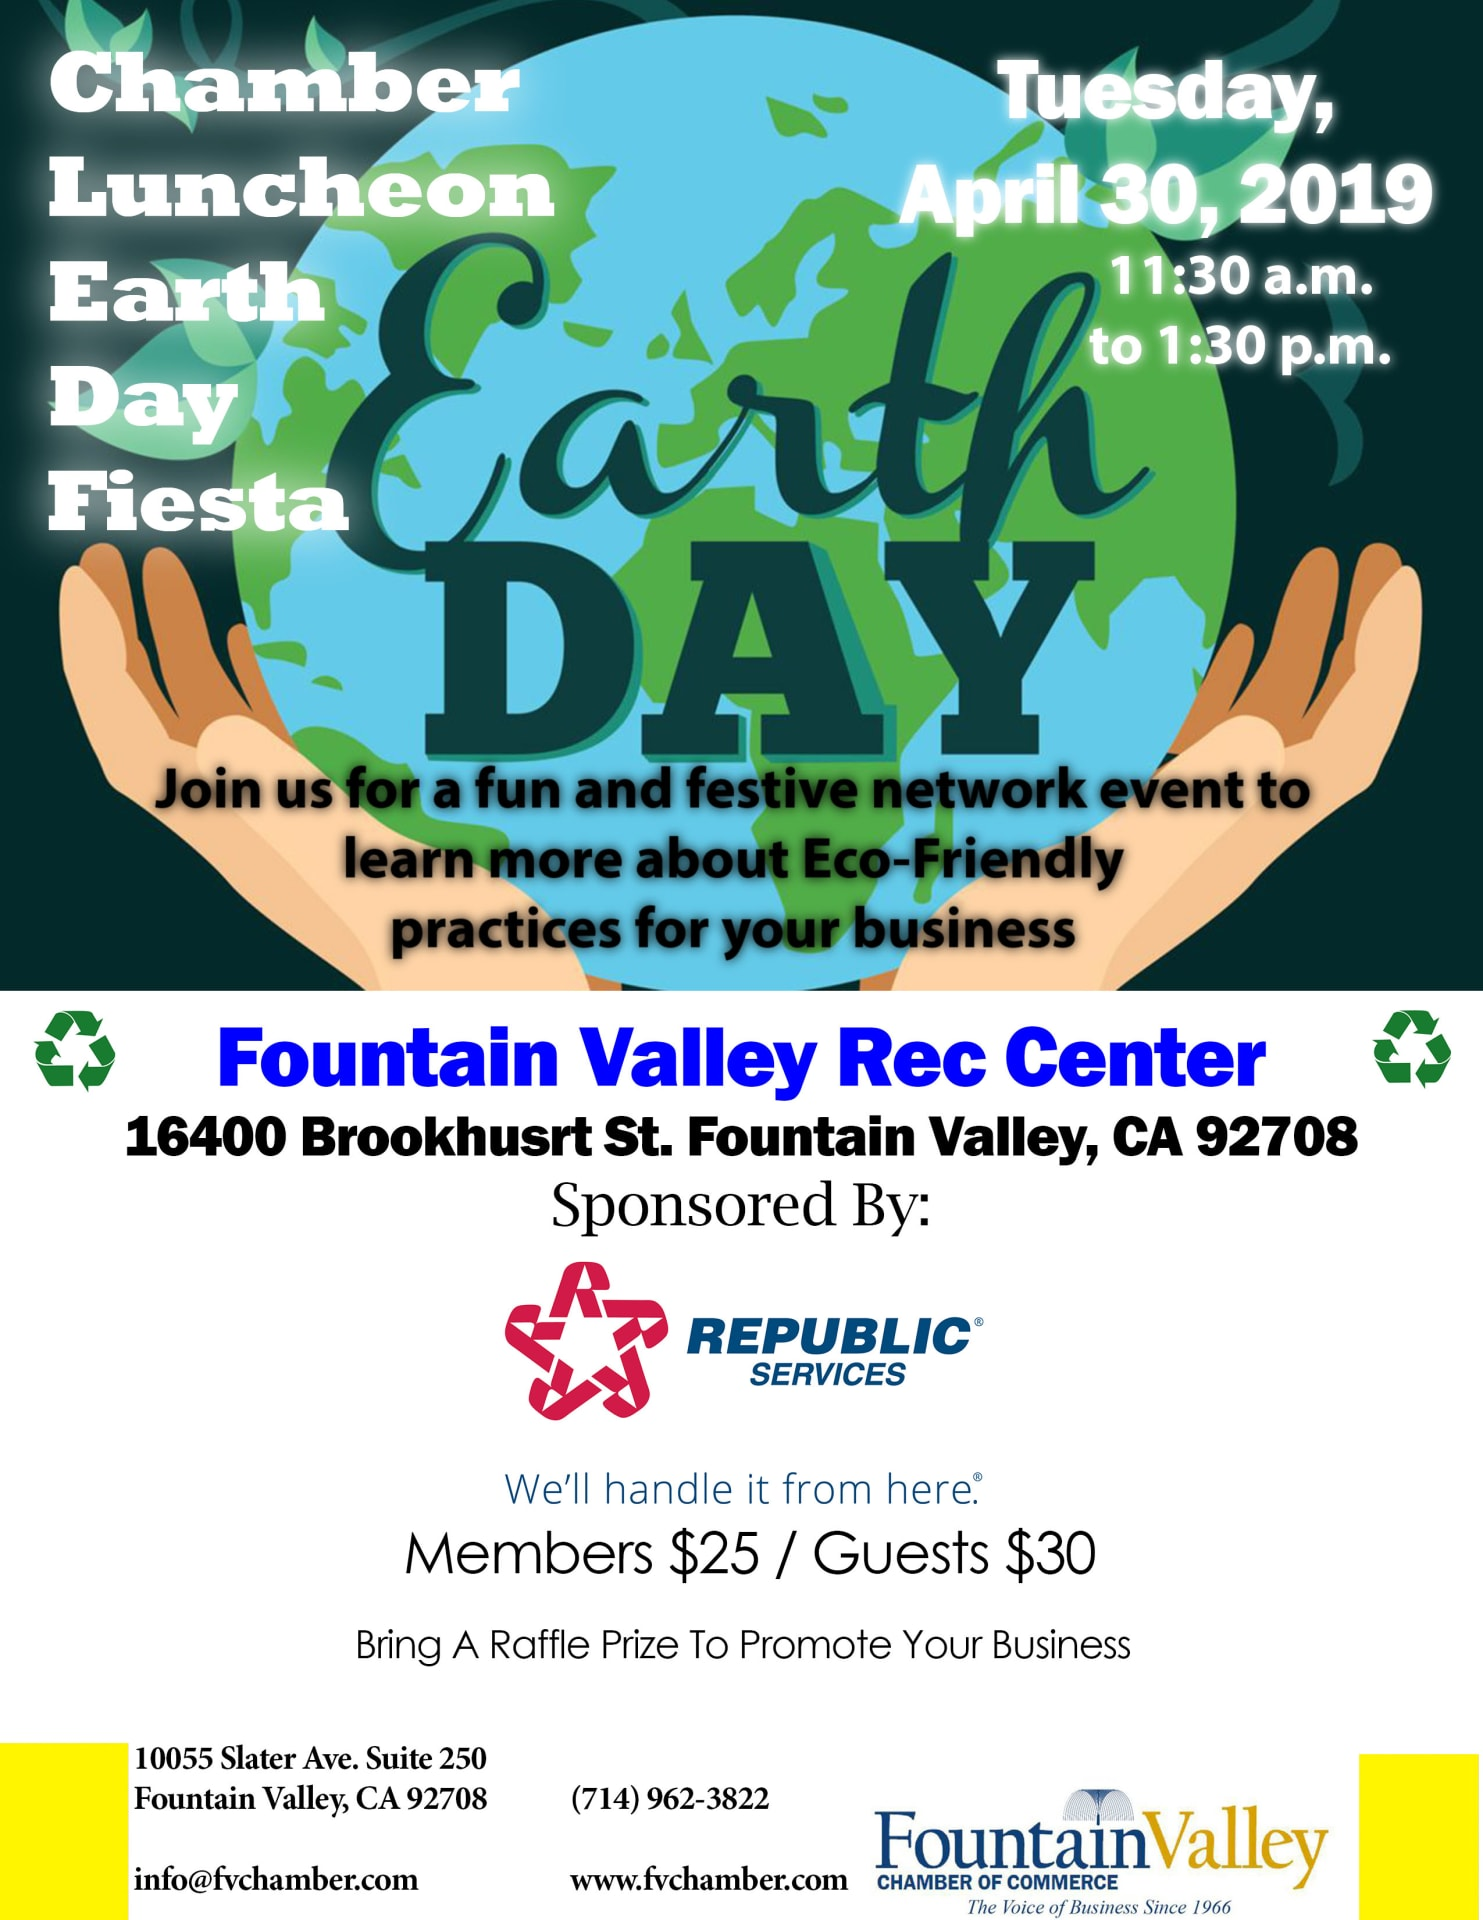 Chamber Luncheon Earth Day Fiesta ~ Brought to you by: Republic Services